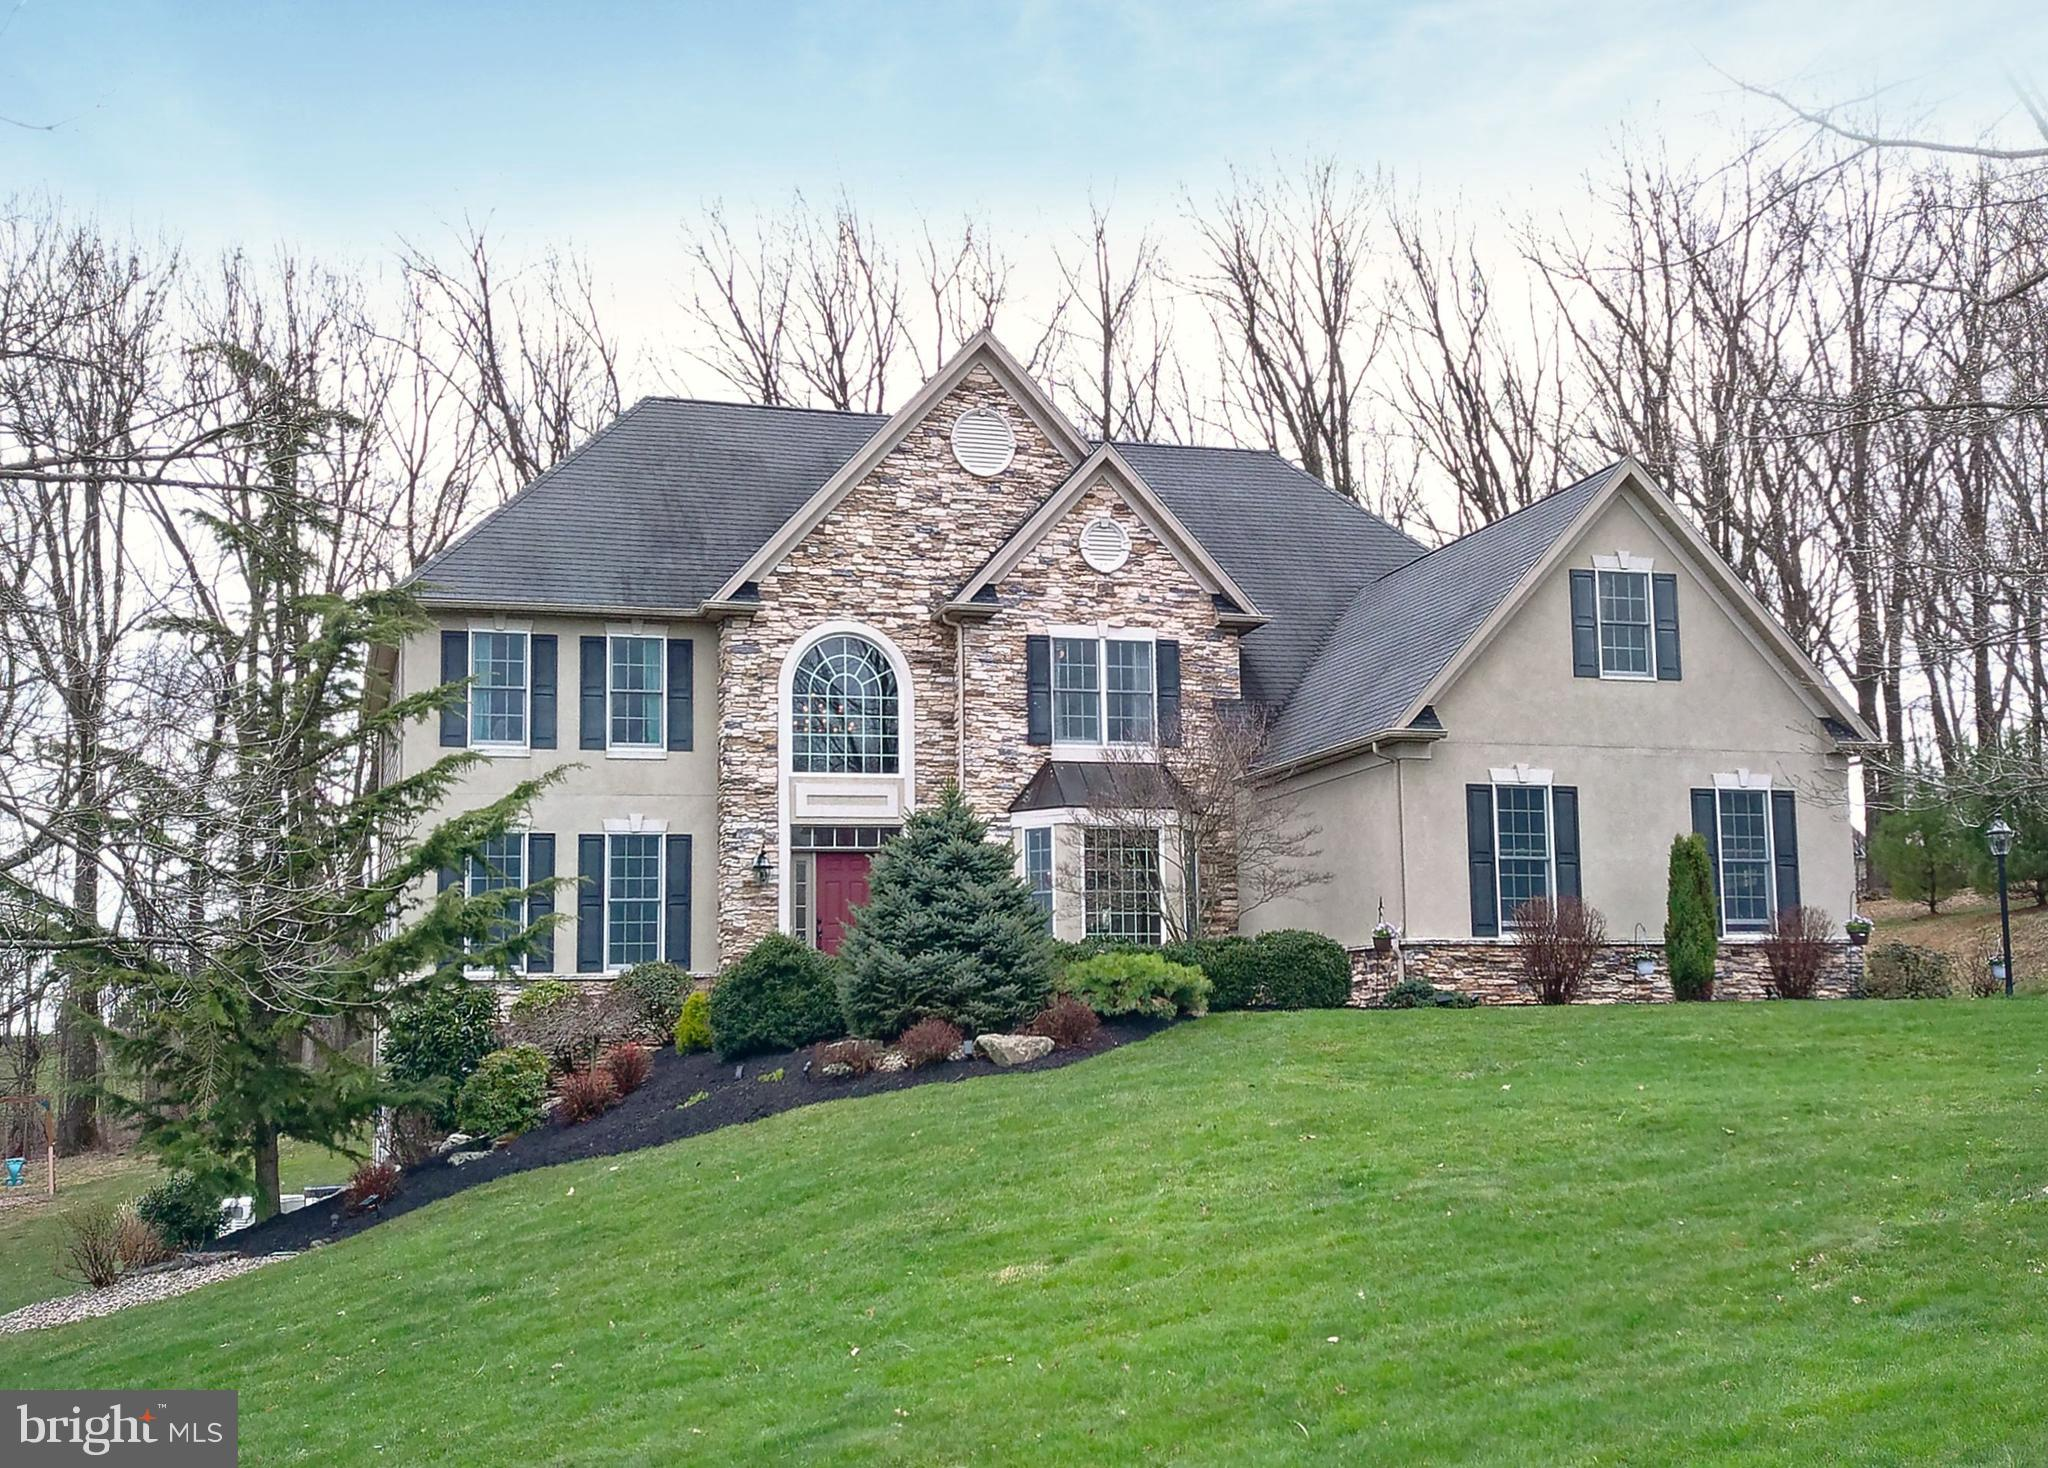 6145 HOLLY COURT, COOPERSBURG, PA 18036